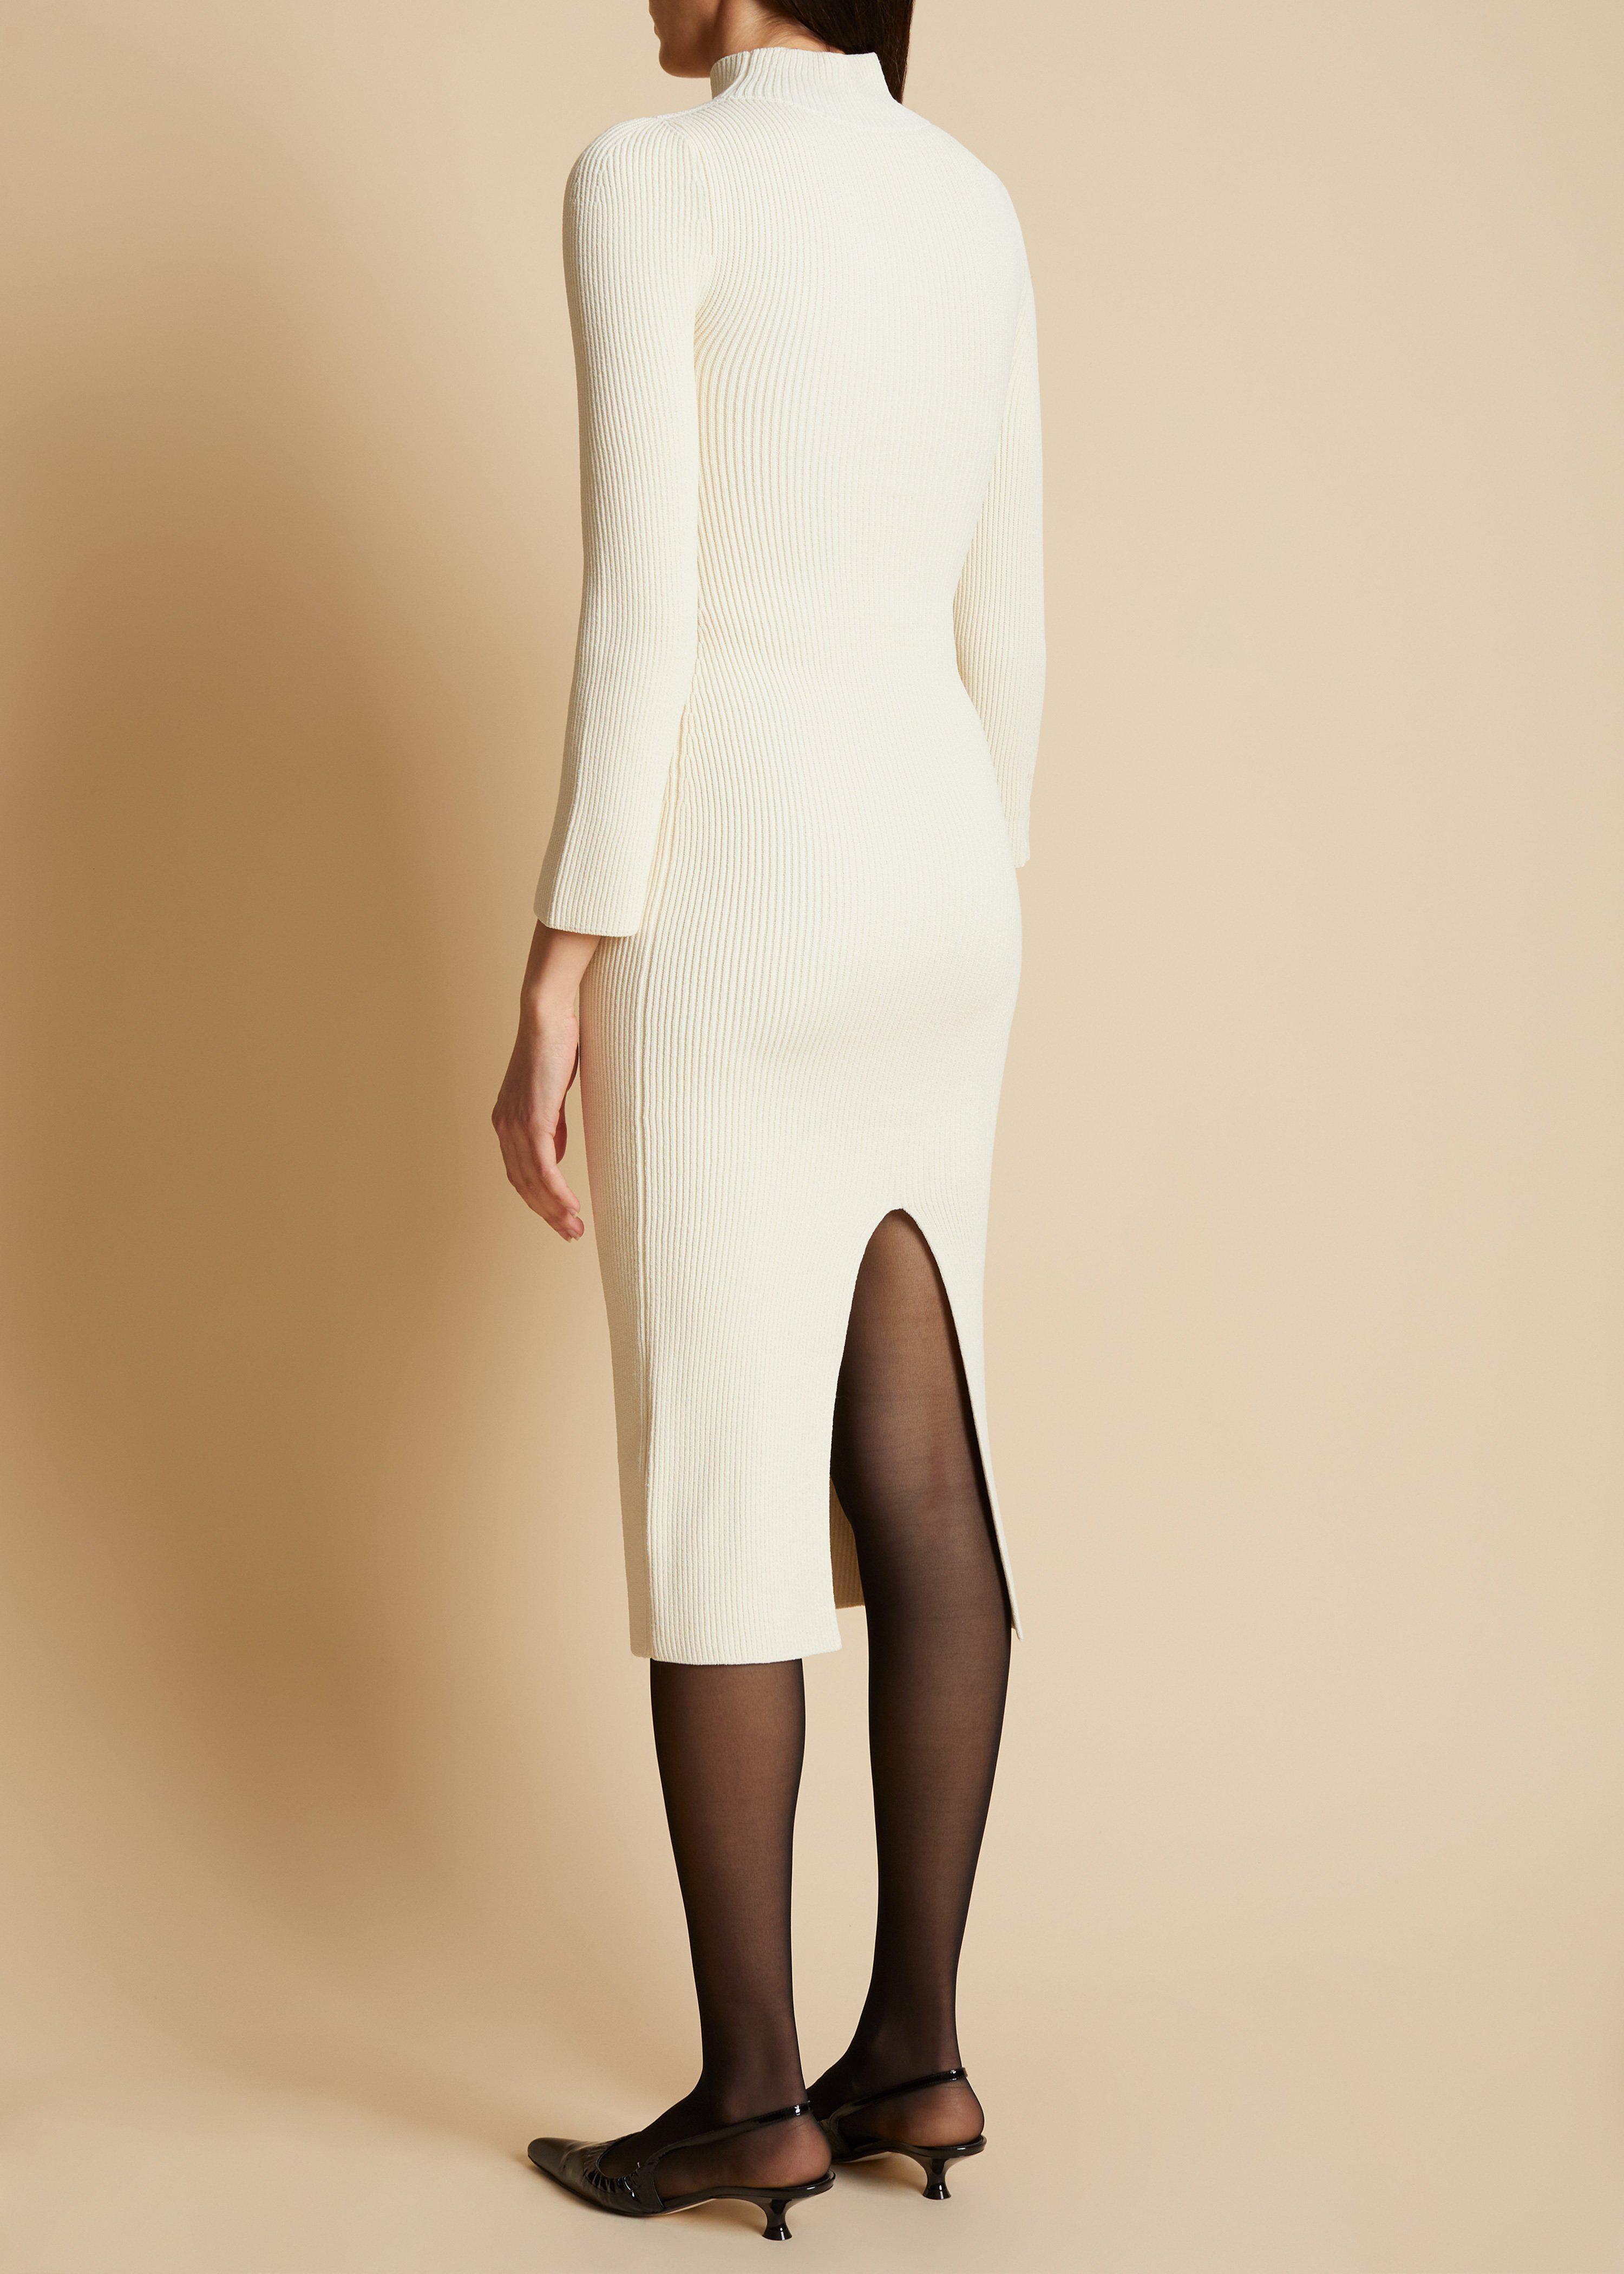 The Mischa Dress in Ivory 2